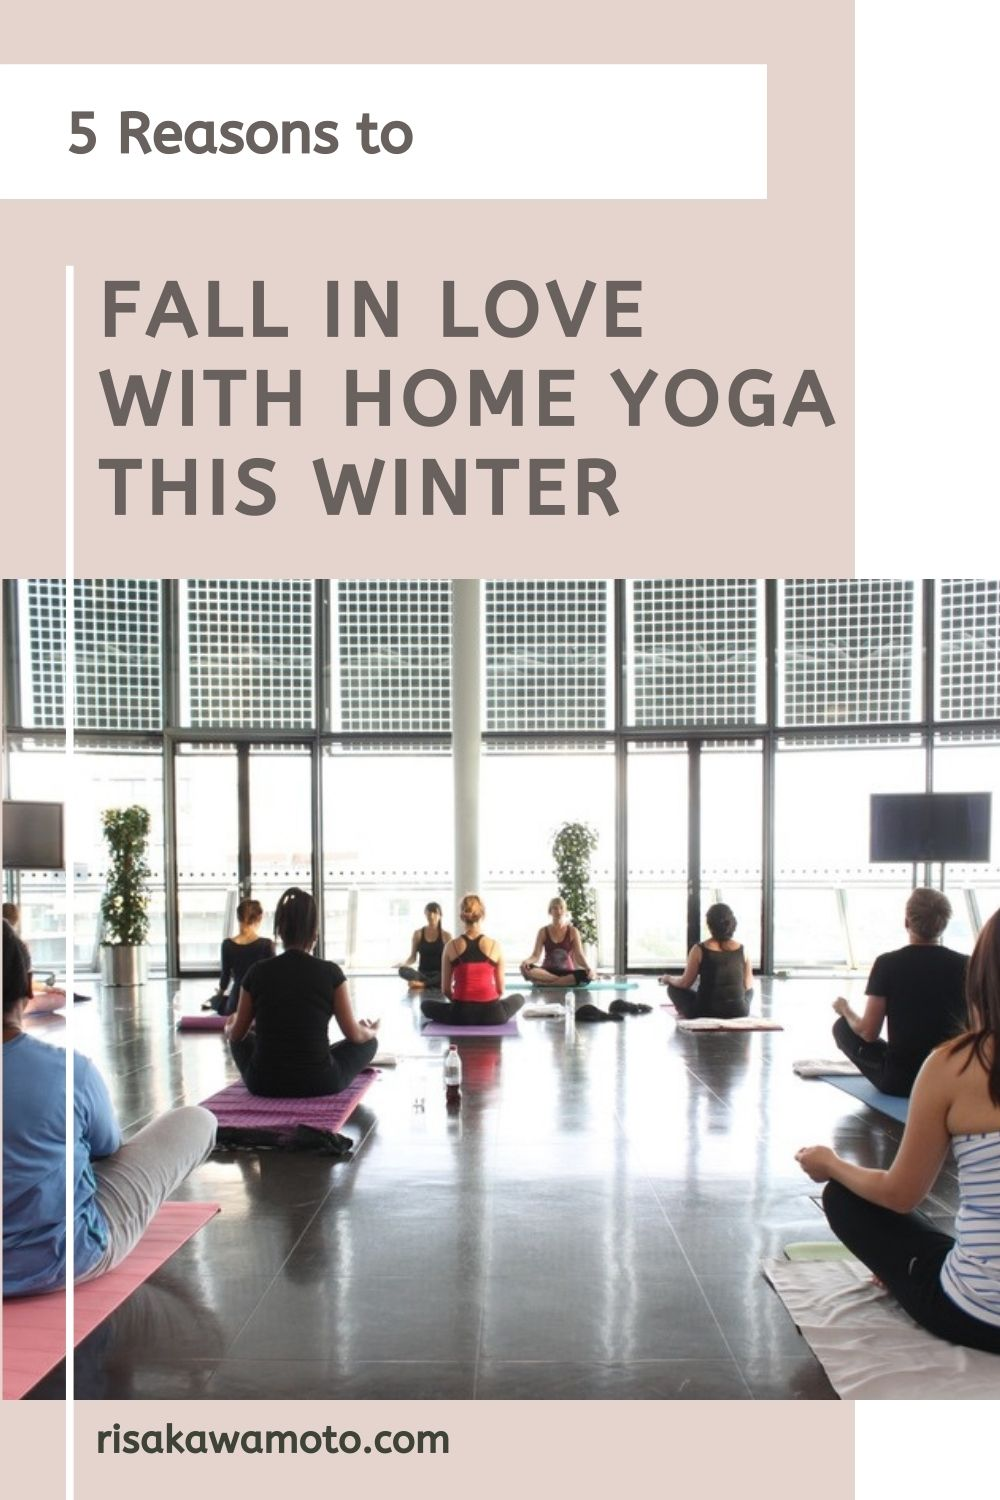 5 Reasons to Fall In Love with Home Yoga This Winter